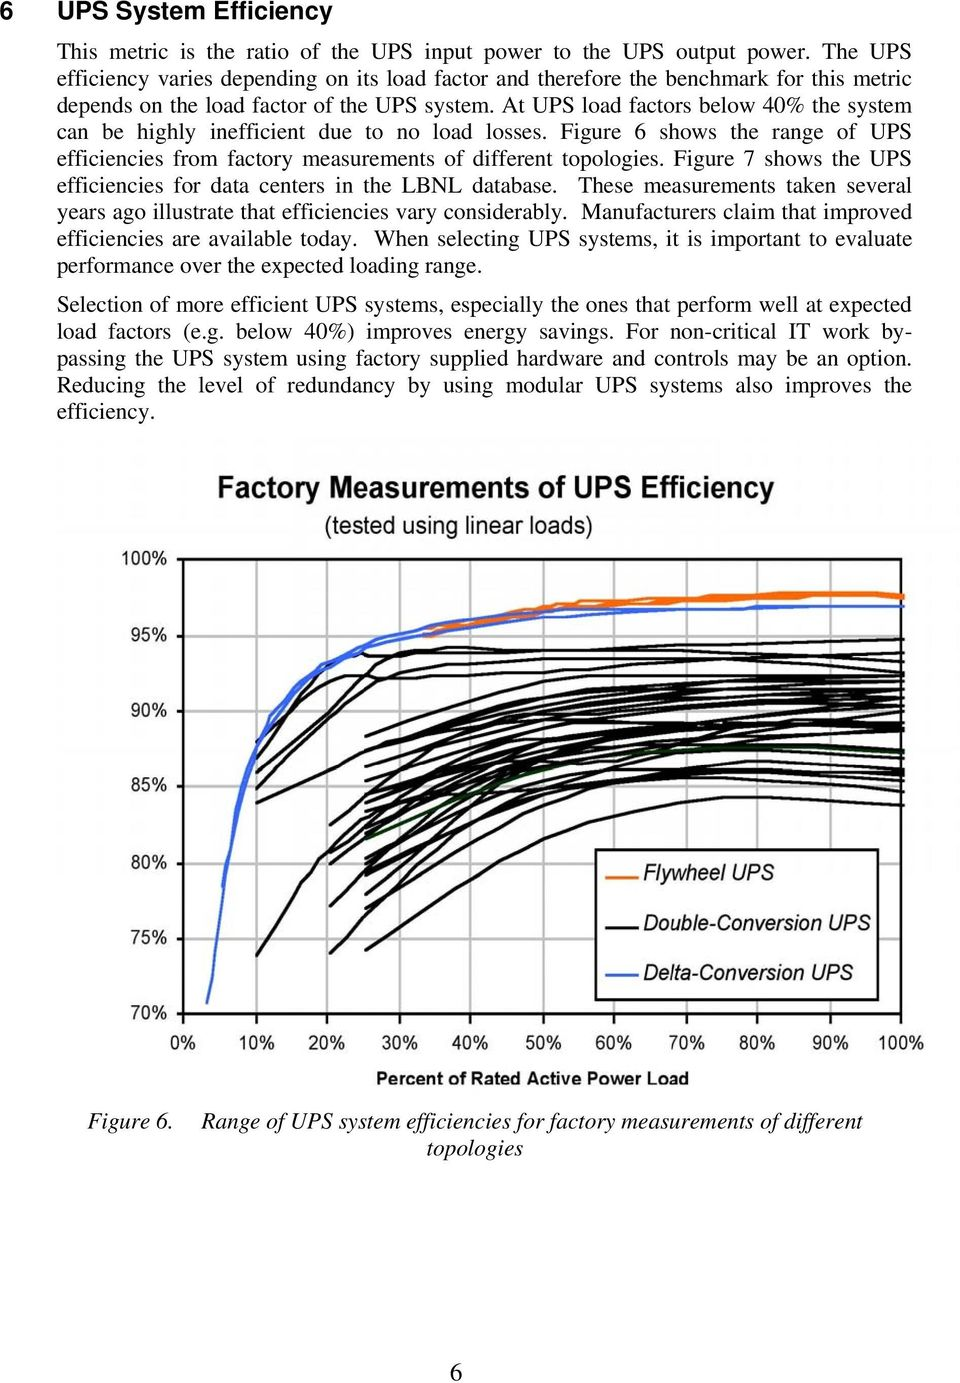 At UPS load factors below 40% the system can be highly inefficient due to no load losses. Figure 6 shows the range of UPS efficiencies from factory measurements of different topologies.